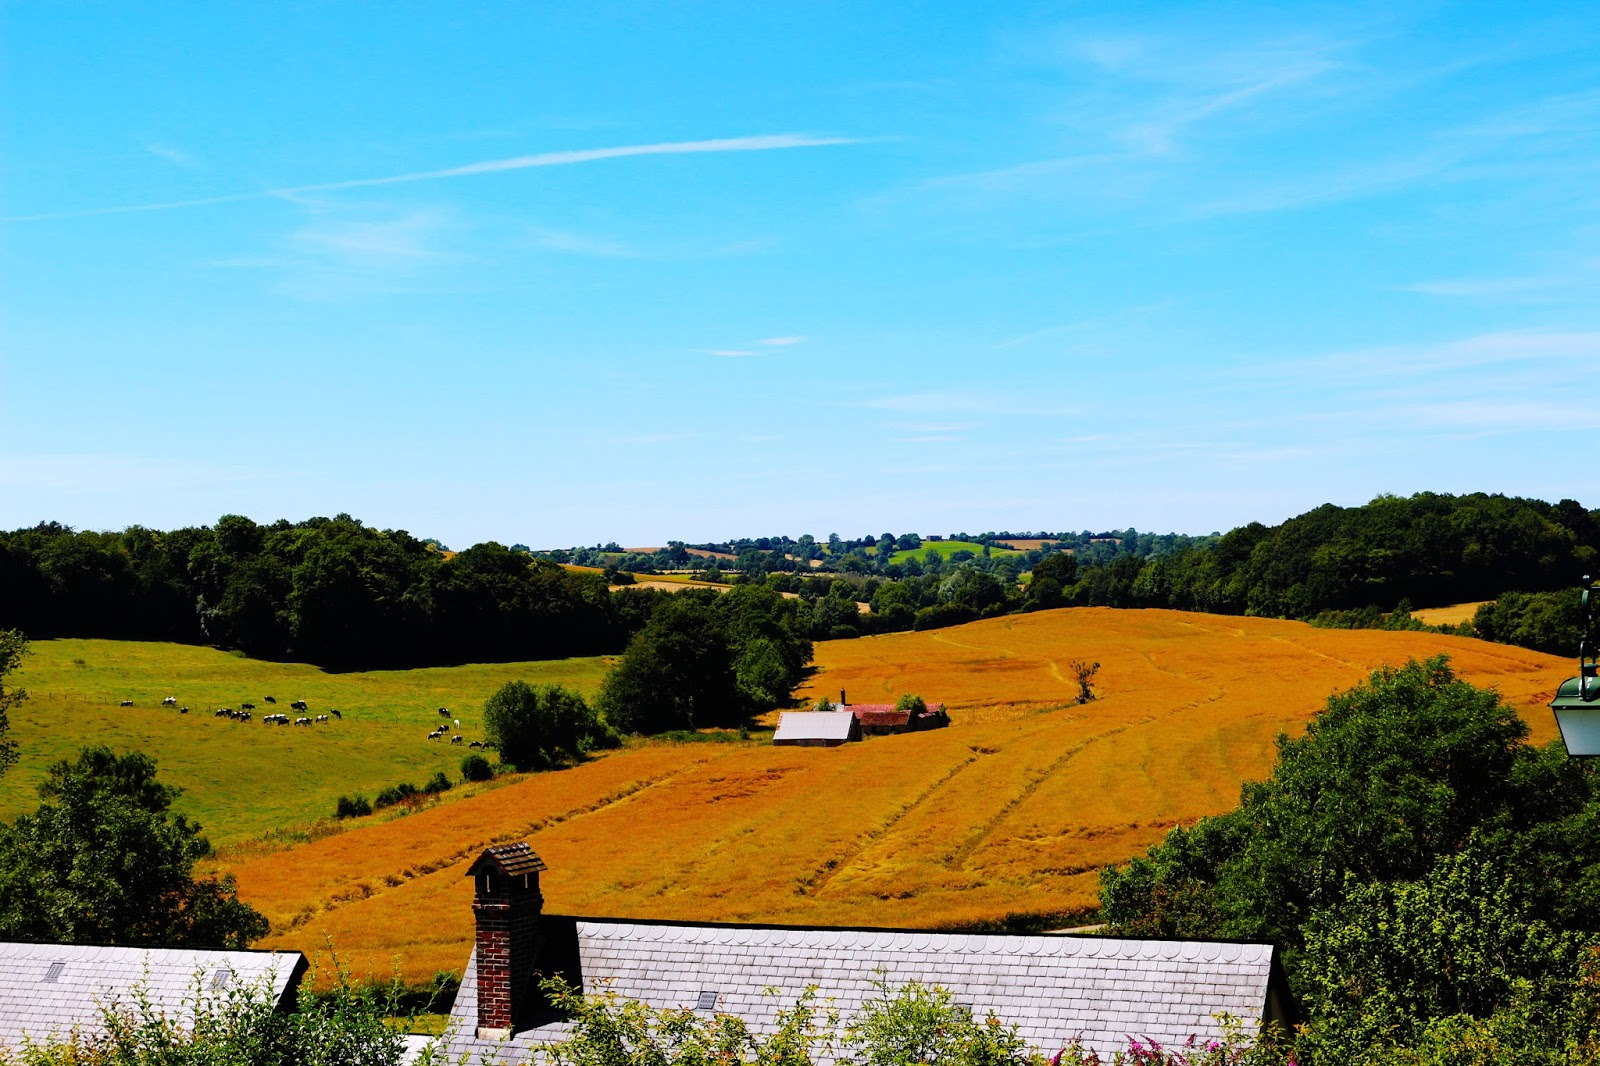 Countryside, Photography, Style, Landscape, France